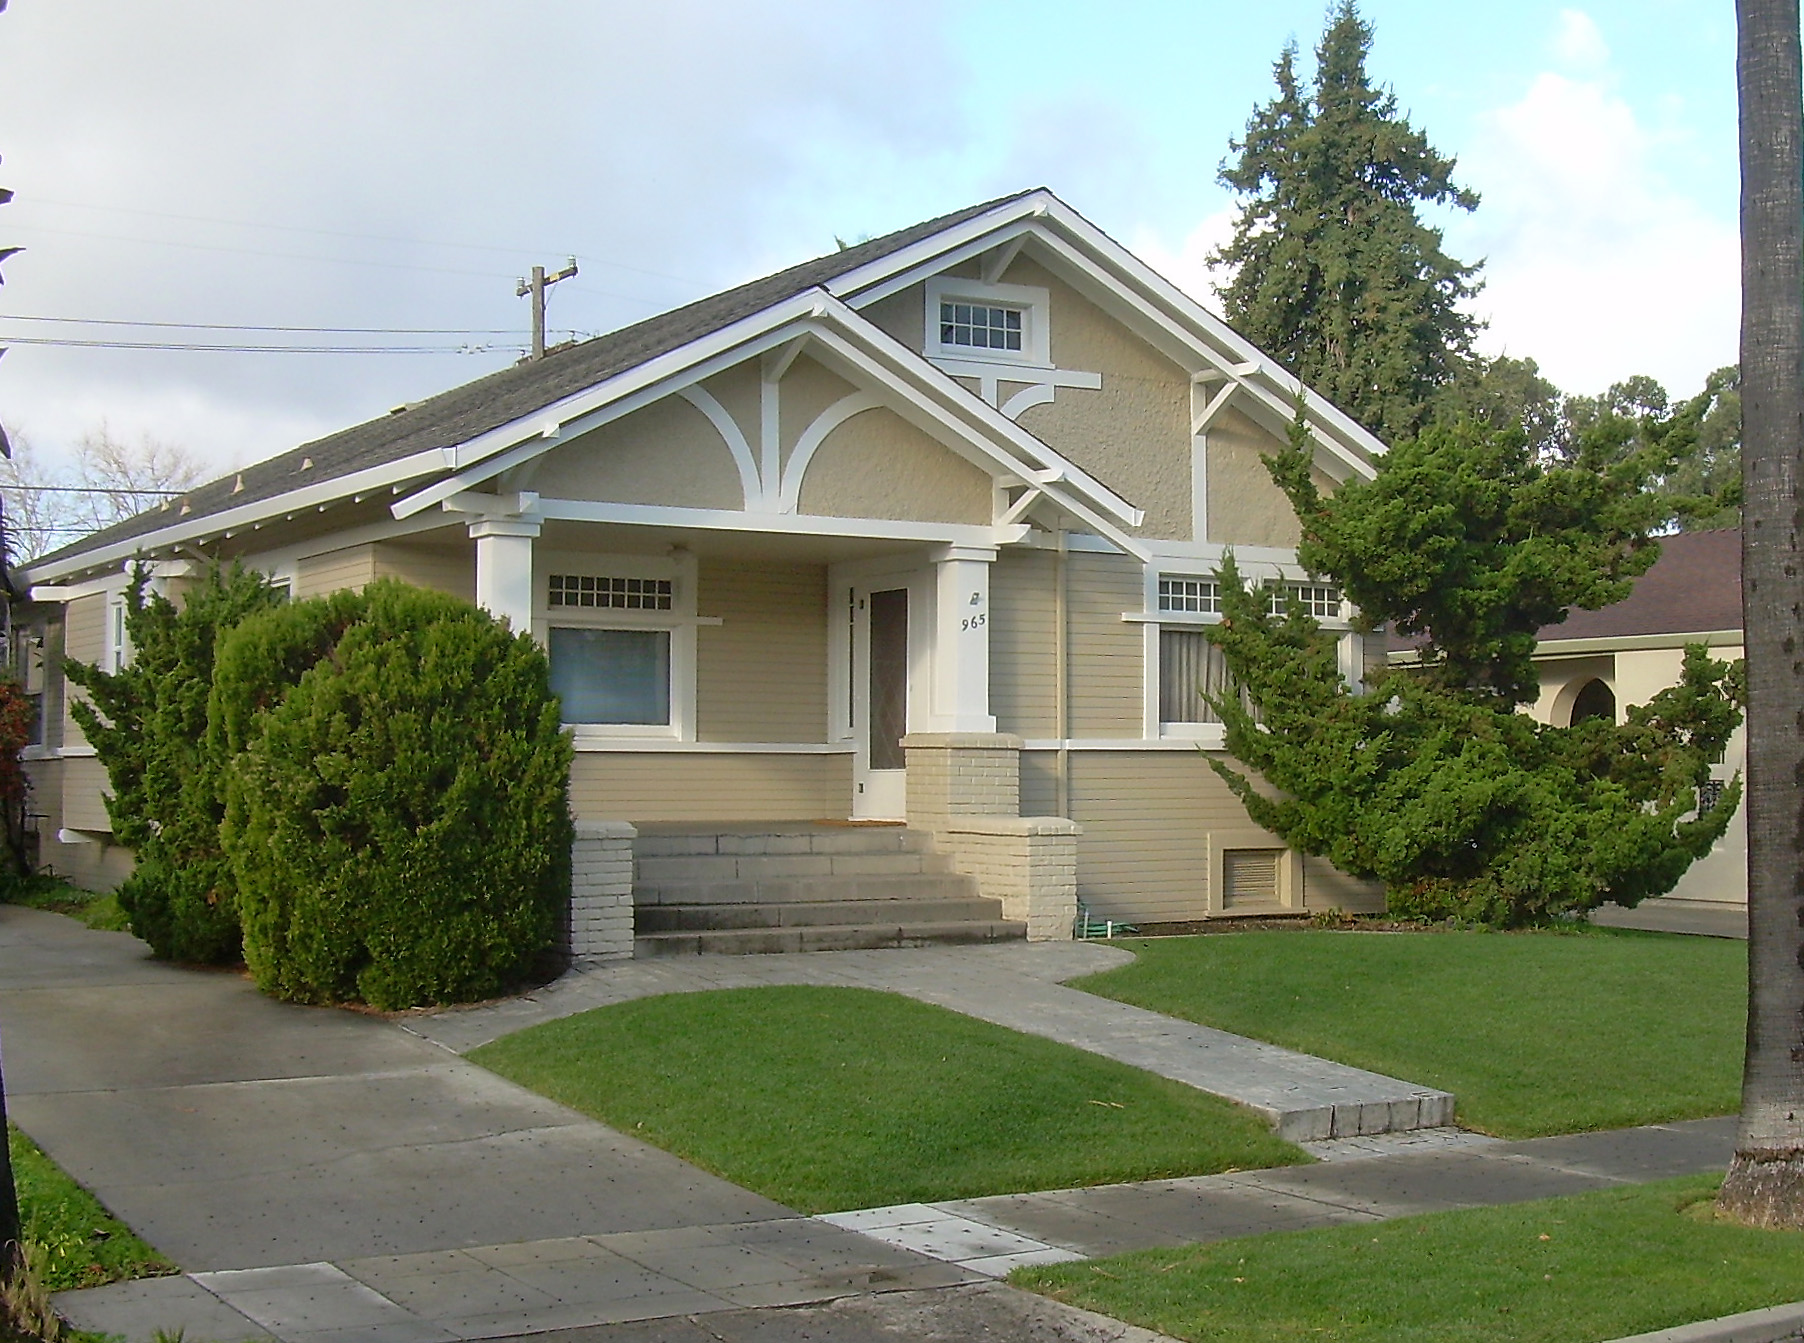 FileAmerican craftsman bungalow in San Jose Cajpg